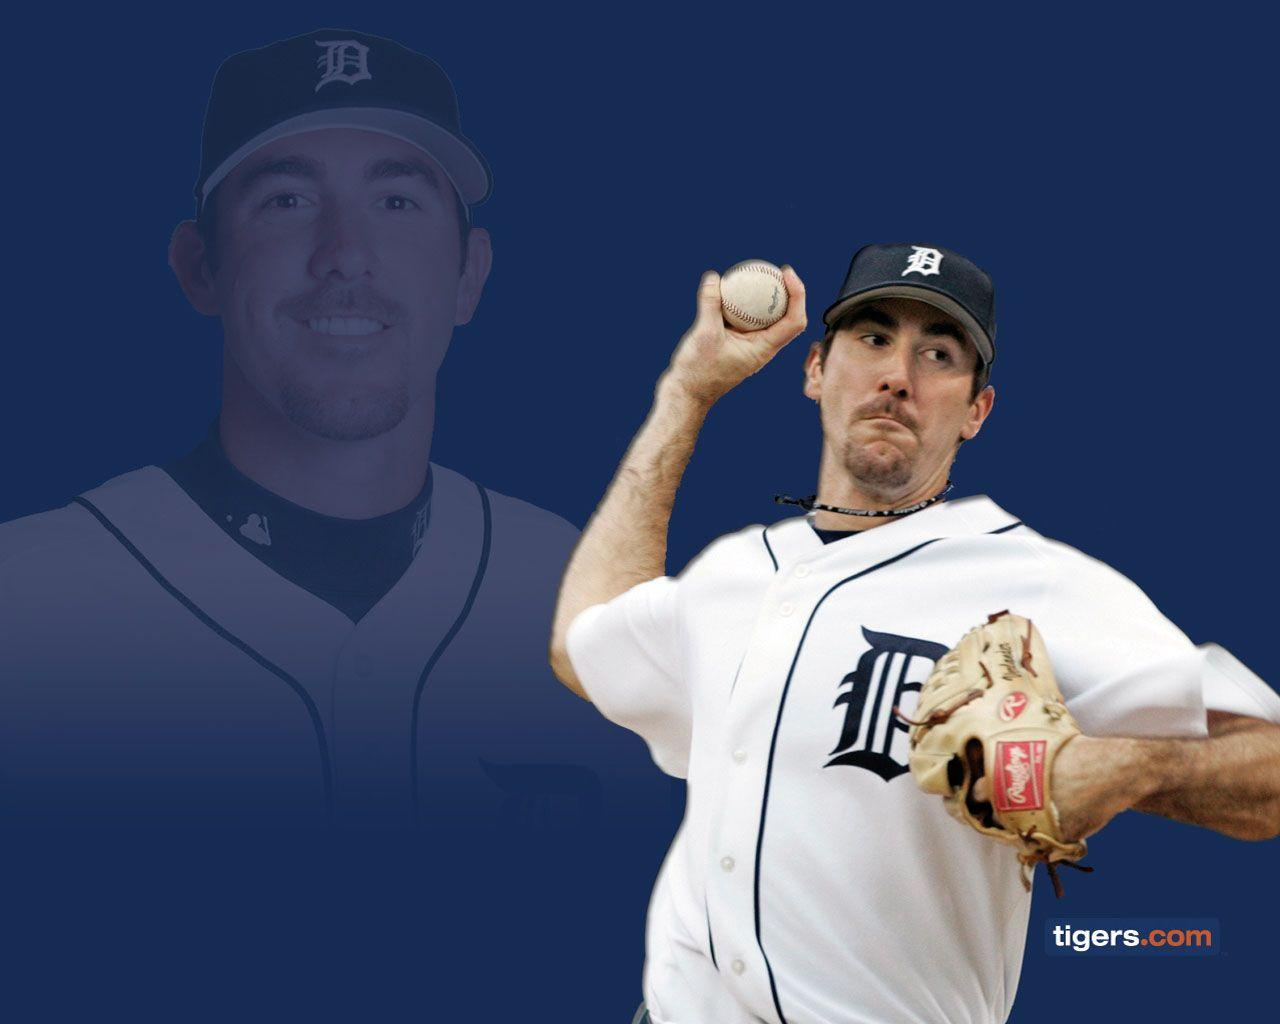 Detroit Tigers Justin Verlander wallpaper | detroit tigers luv'em ...